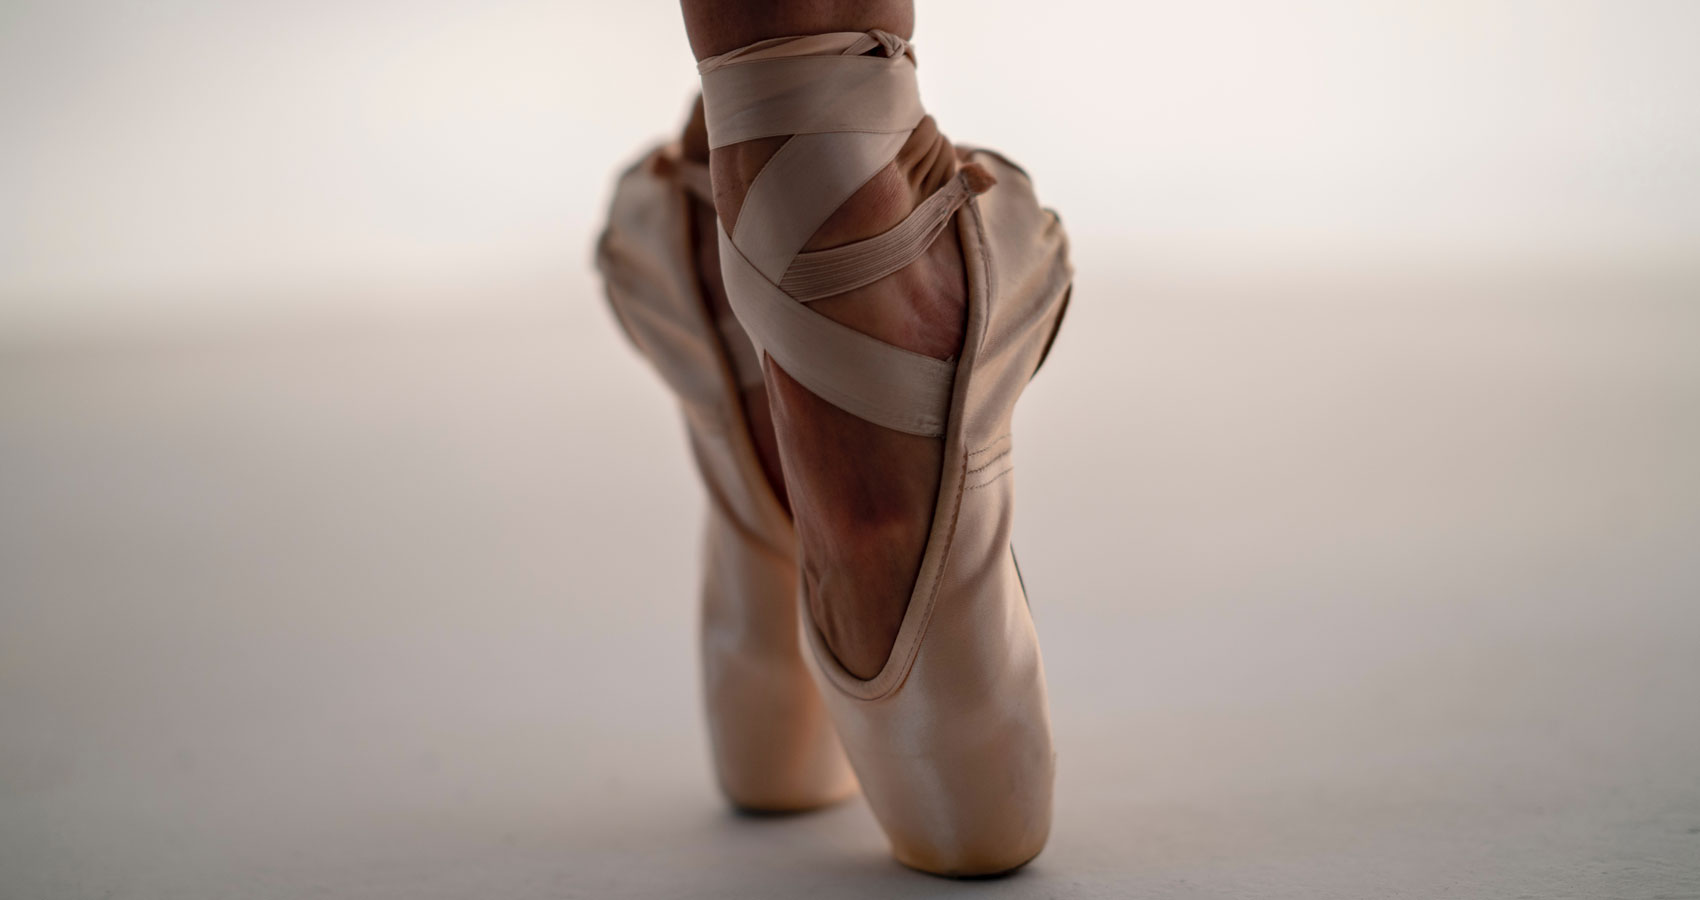 Portrait of A Ballerina, poetry written by Eoghan Lyng at Spillwords.com